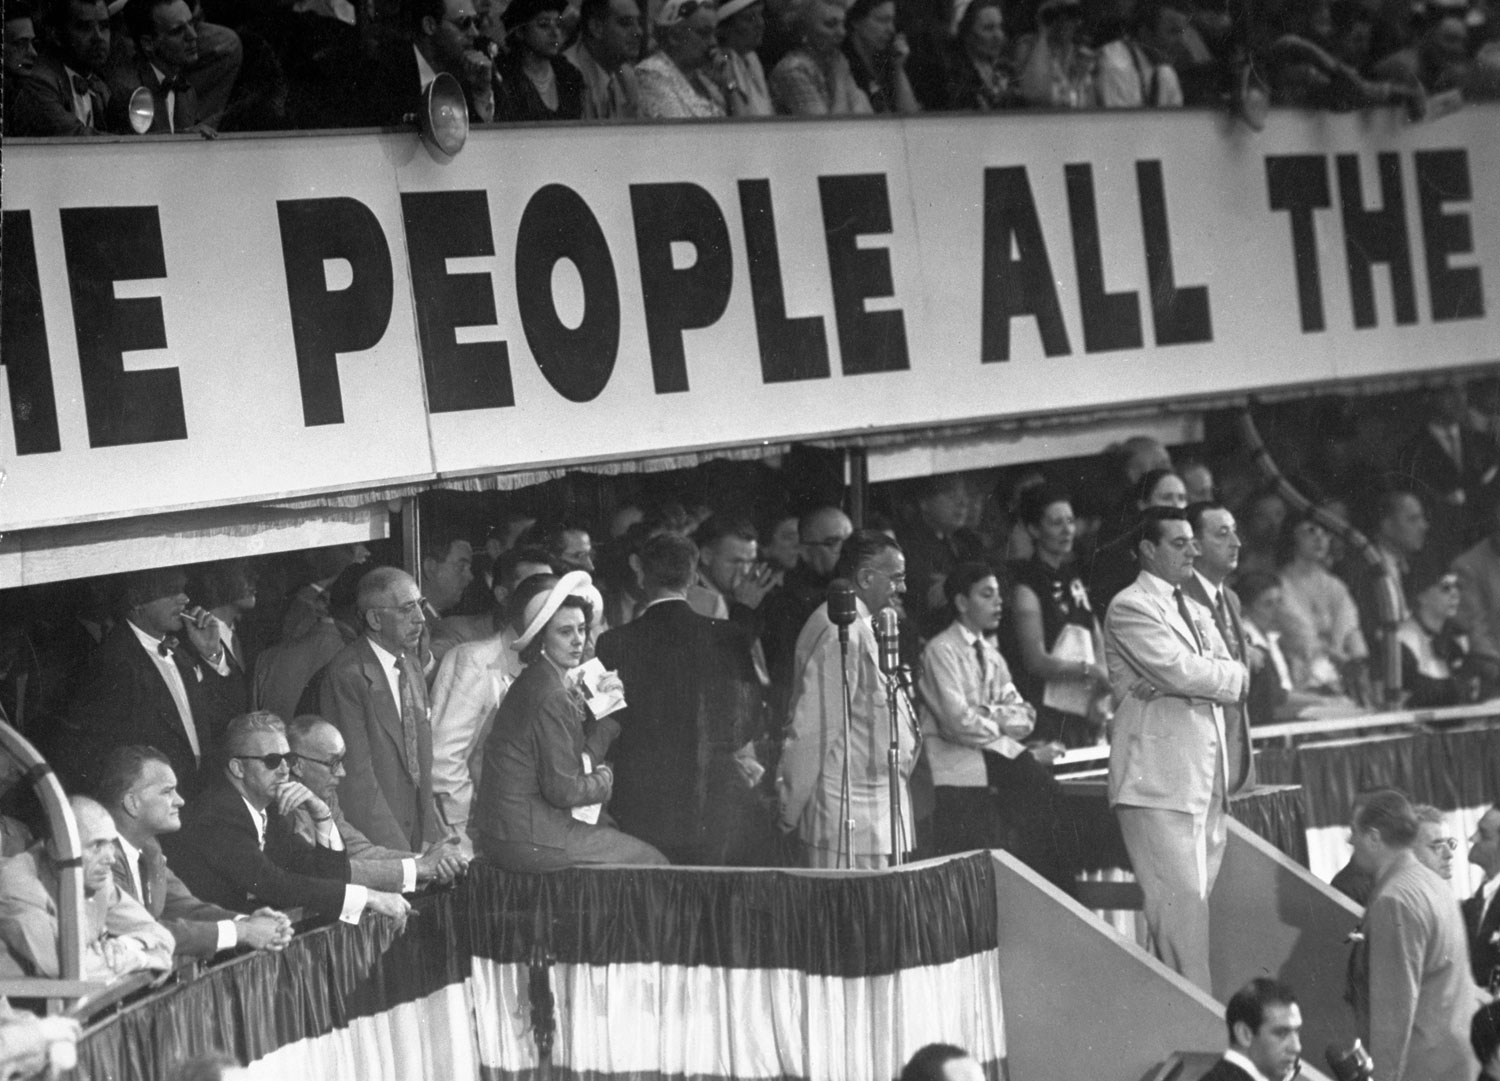 Mrs. Estes Kefauver (center, in white hat) watching the action at the 1952 Democratic National Convention in Chicago.